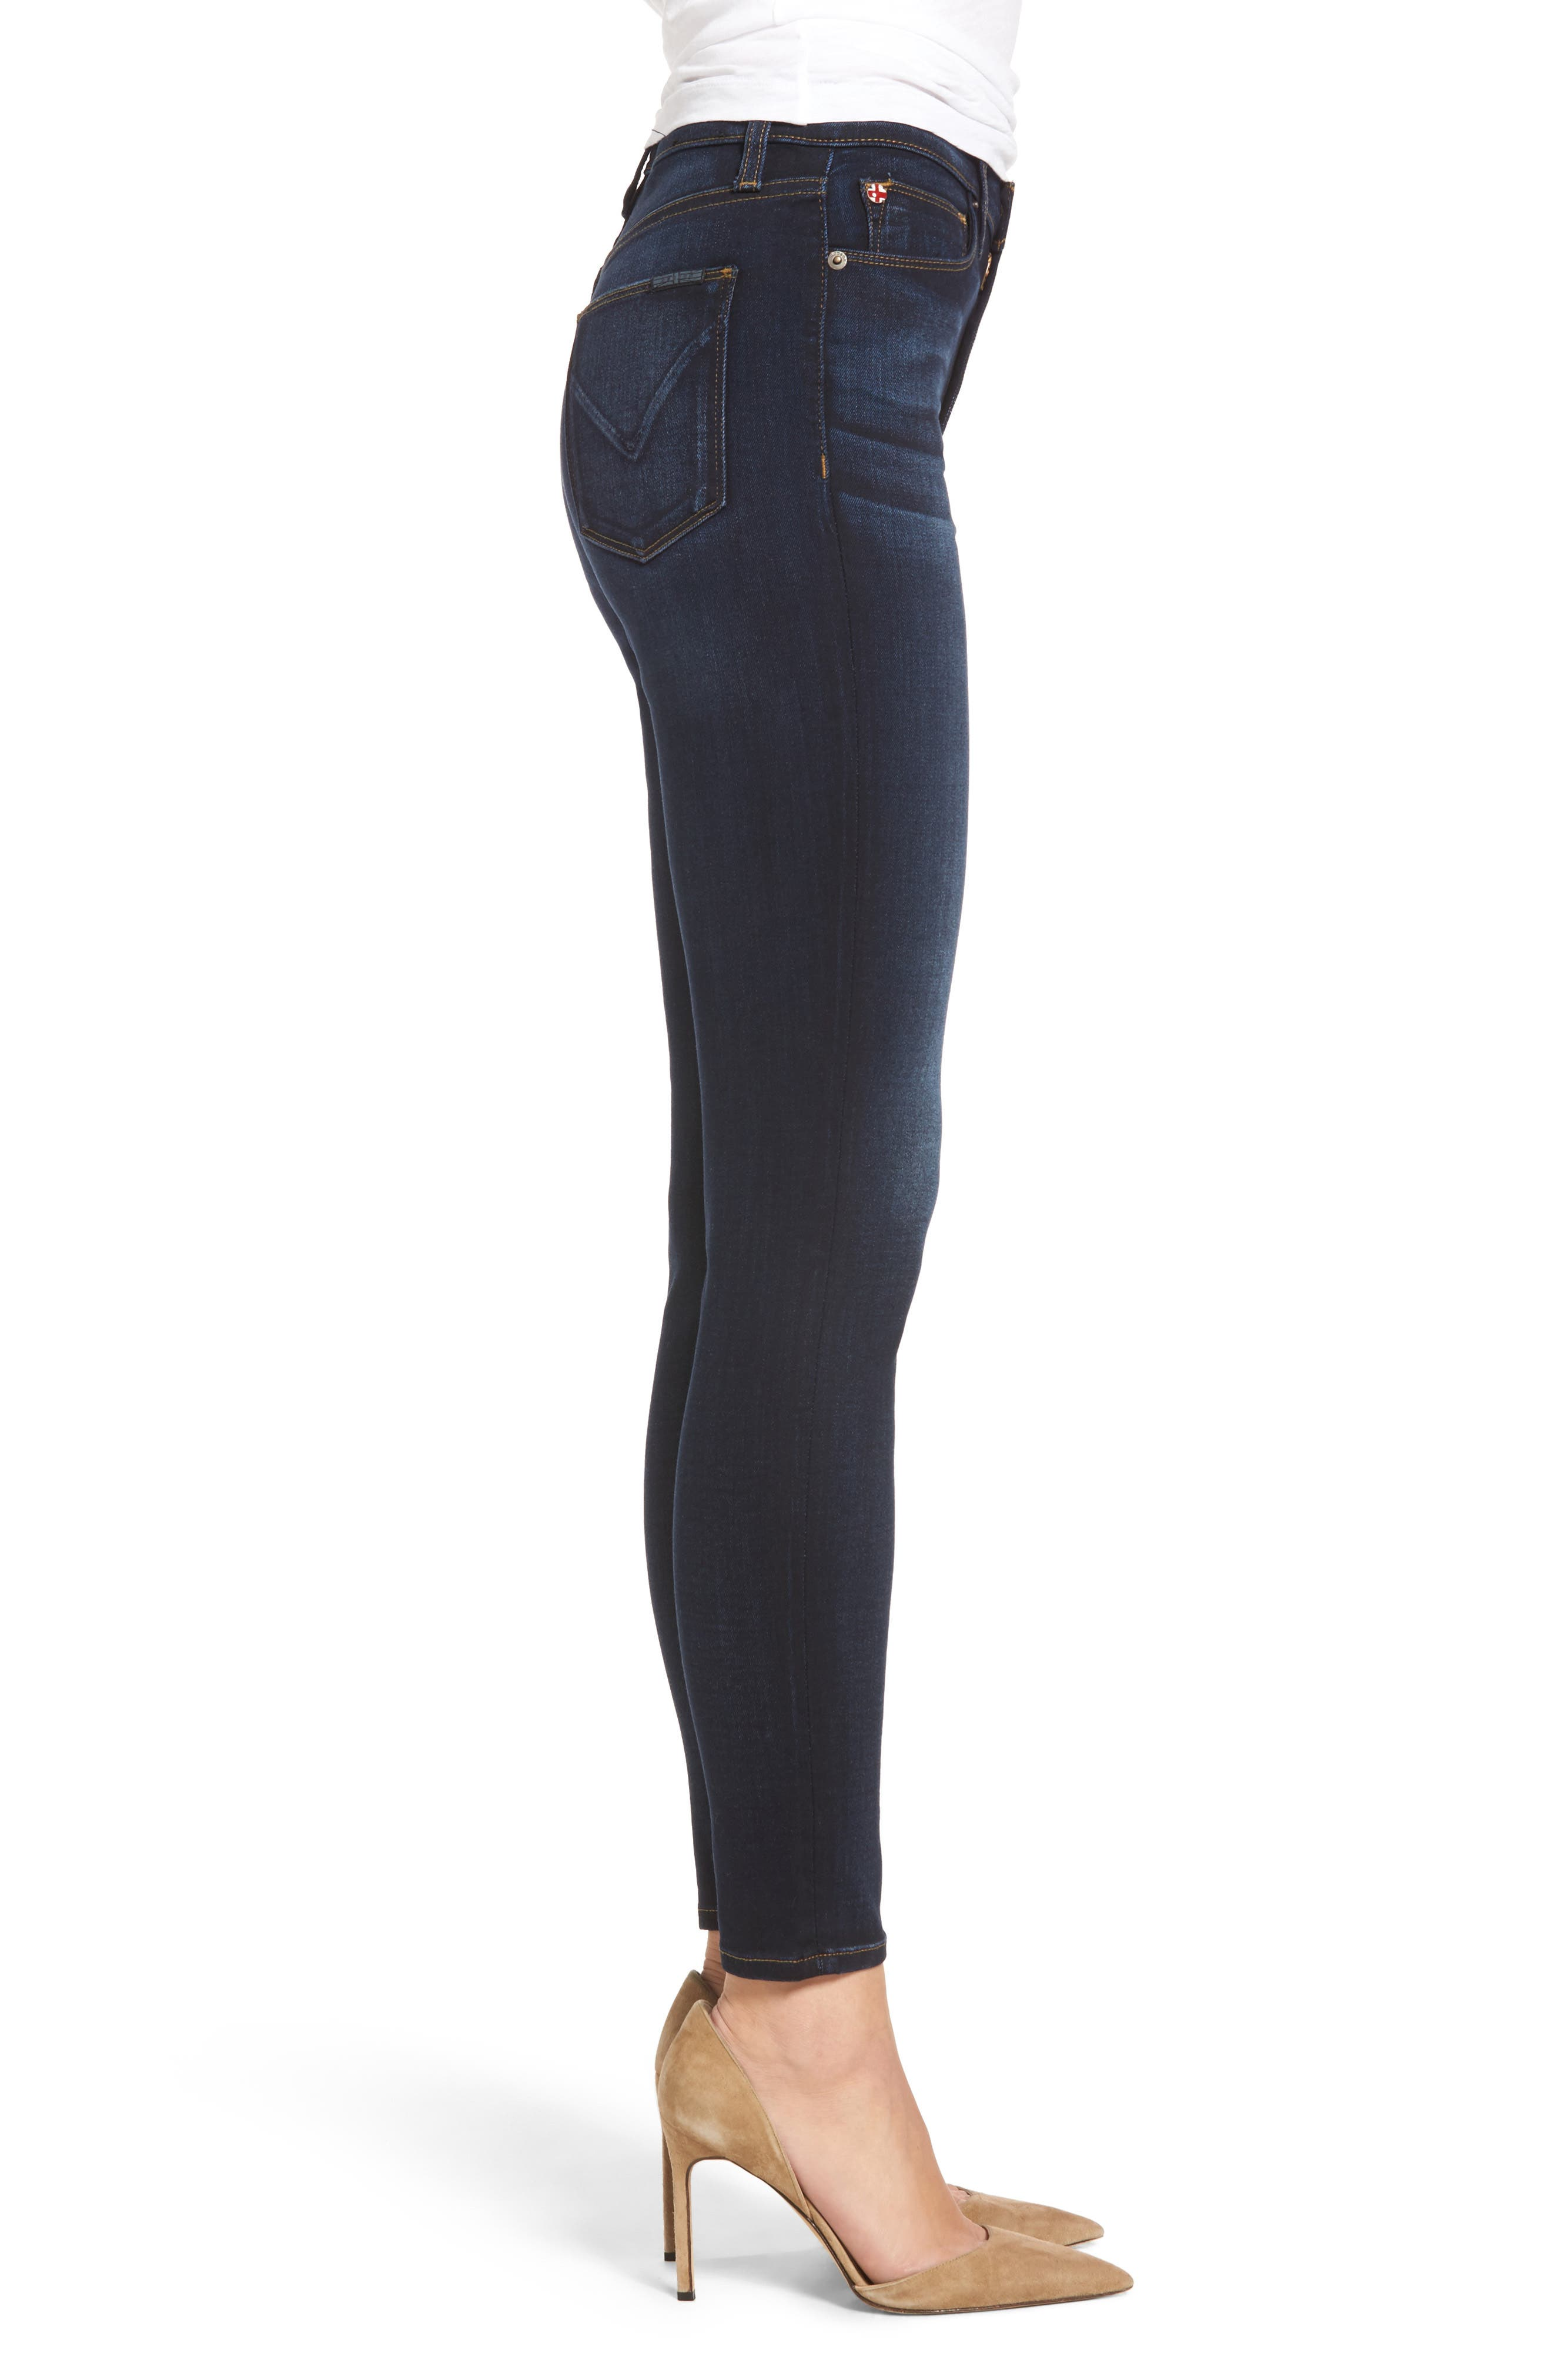 Barbara High Waist Super Skinny Jeans,                             Alternate thumbnail 3, color,                             402